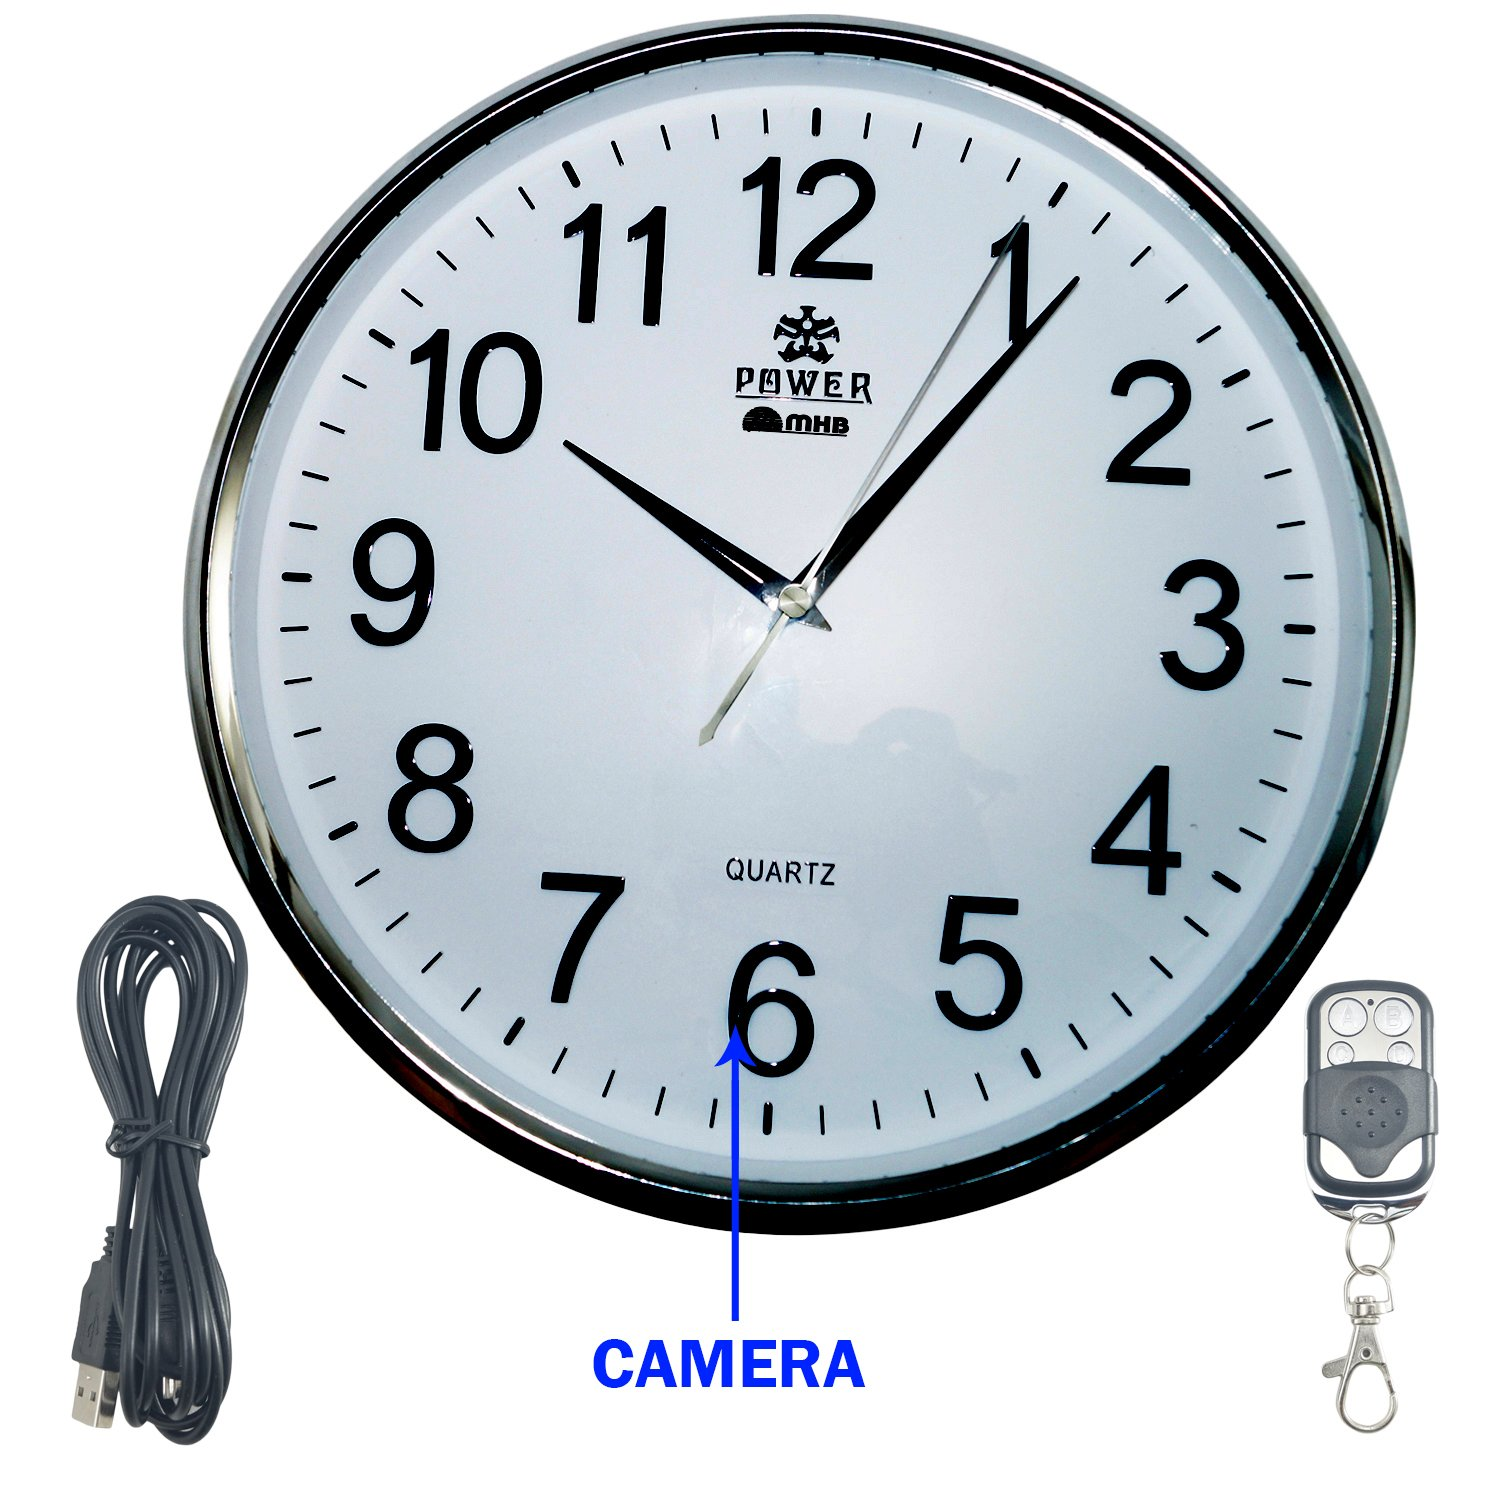 Wall clock security camera images home wall decoration ideas buy m mhb full hd 19201080 quality wall clock hidden spy camera buy m mhb full amipublicfo Images